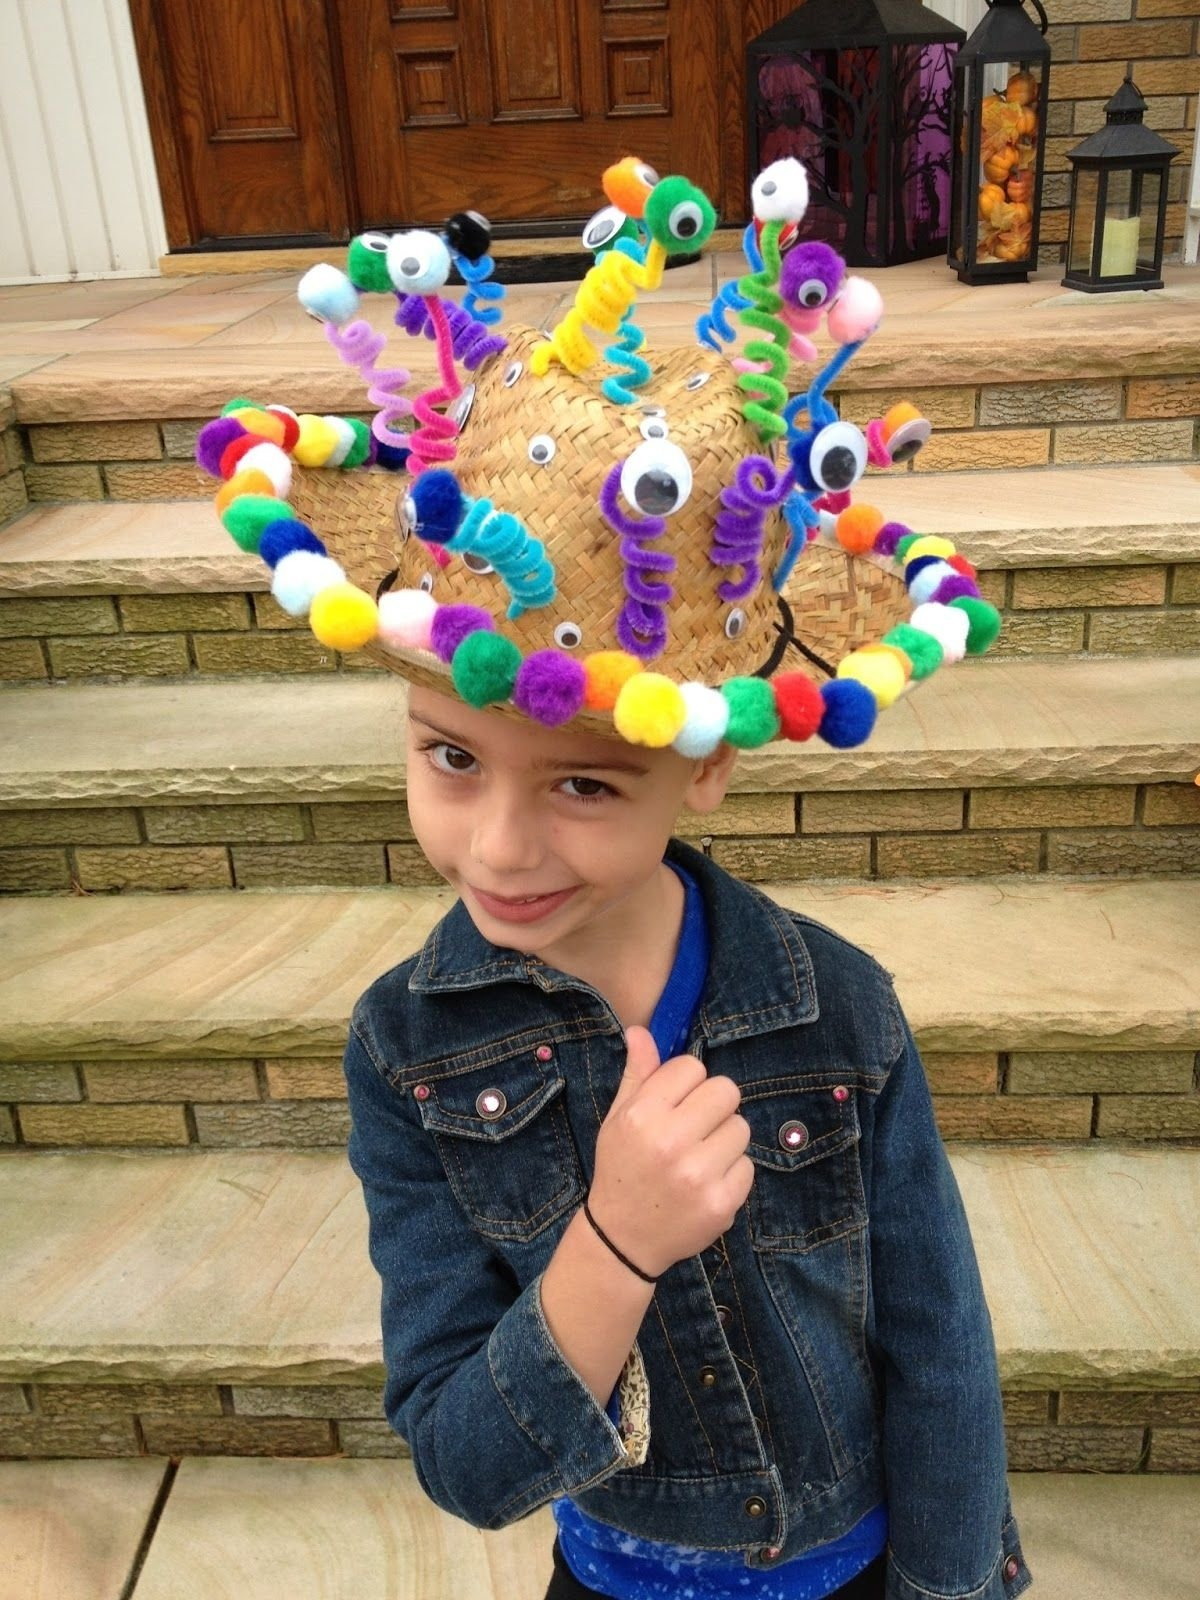 10 Cute Ideas For Crazy Hat Day pinlyne ashley on mommas diy pinterest school google and 2021